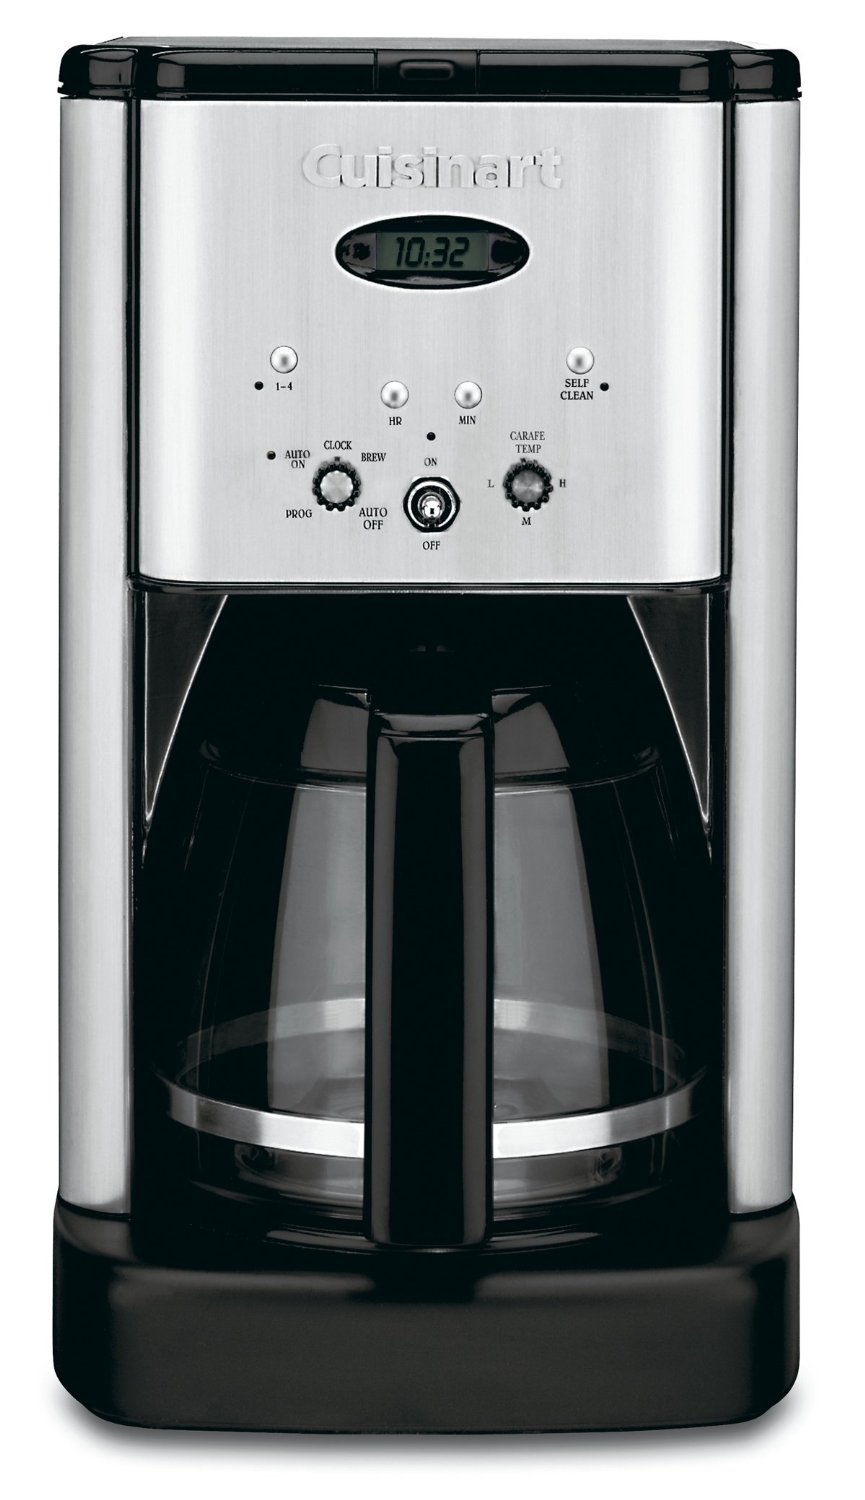 Cuisinart Dcc 1200 Brew Central 12 Cup Programmable Coffeemaker Review